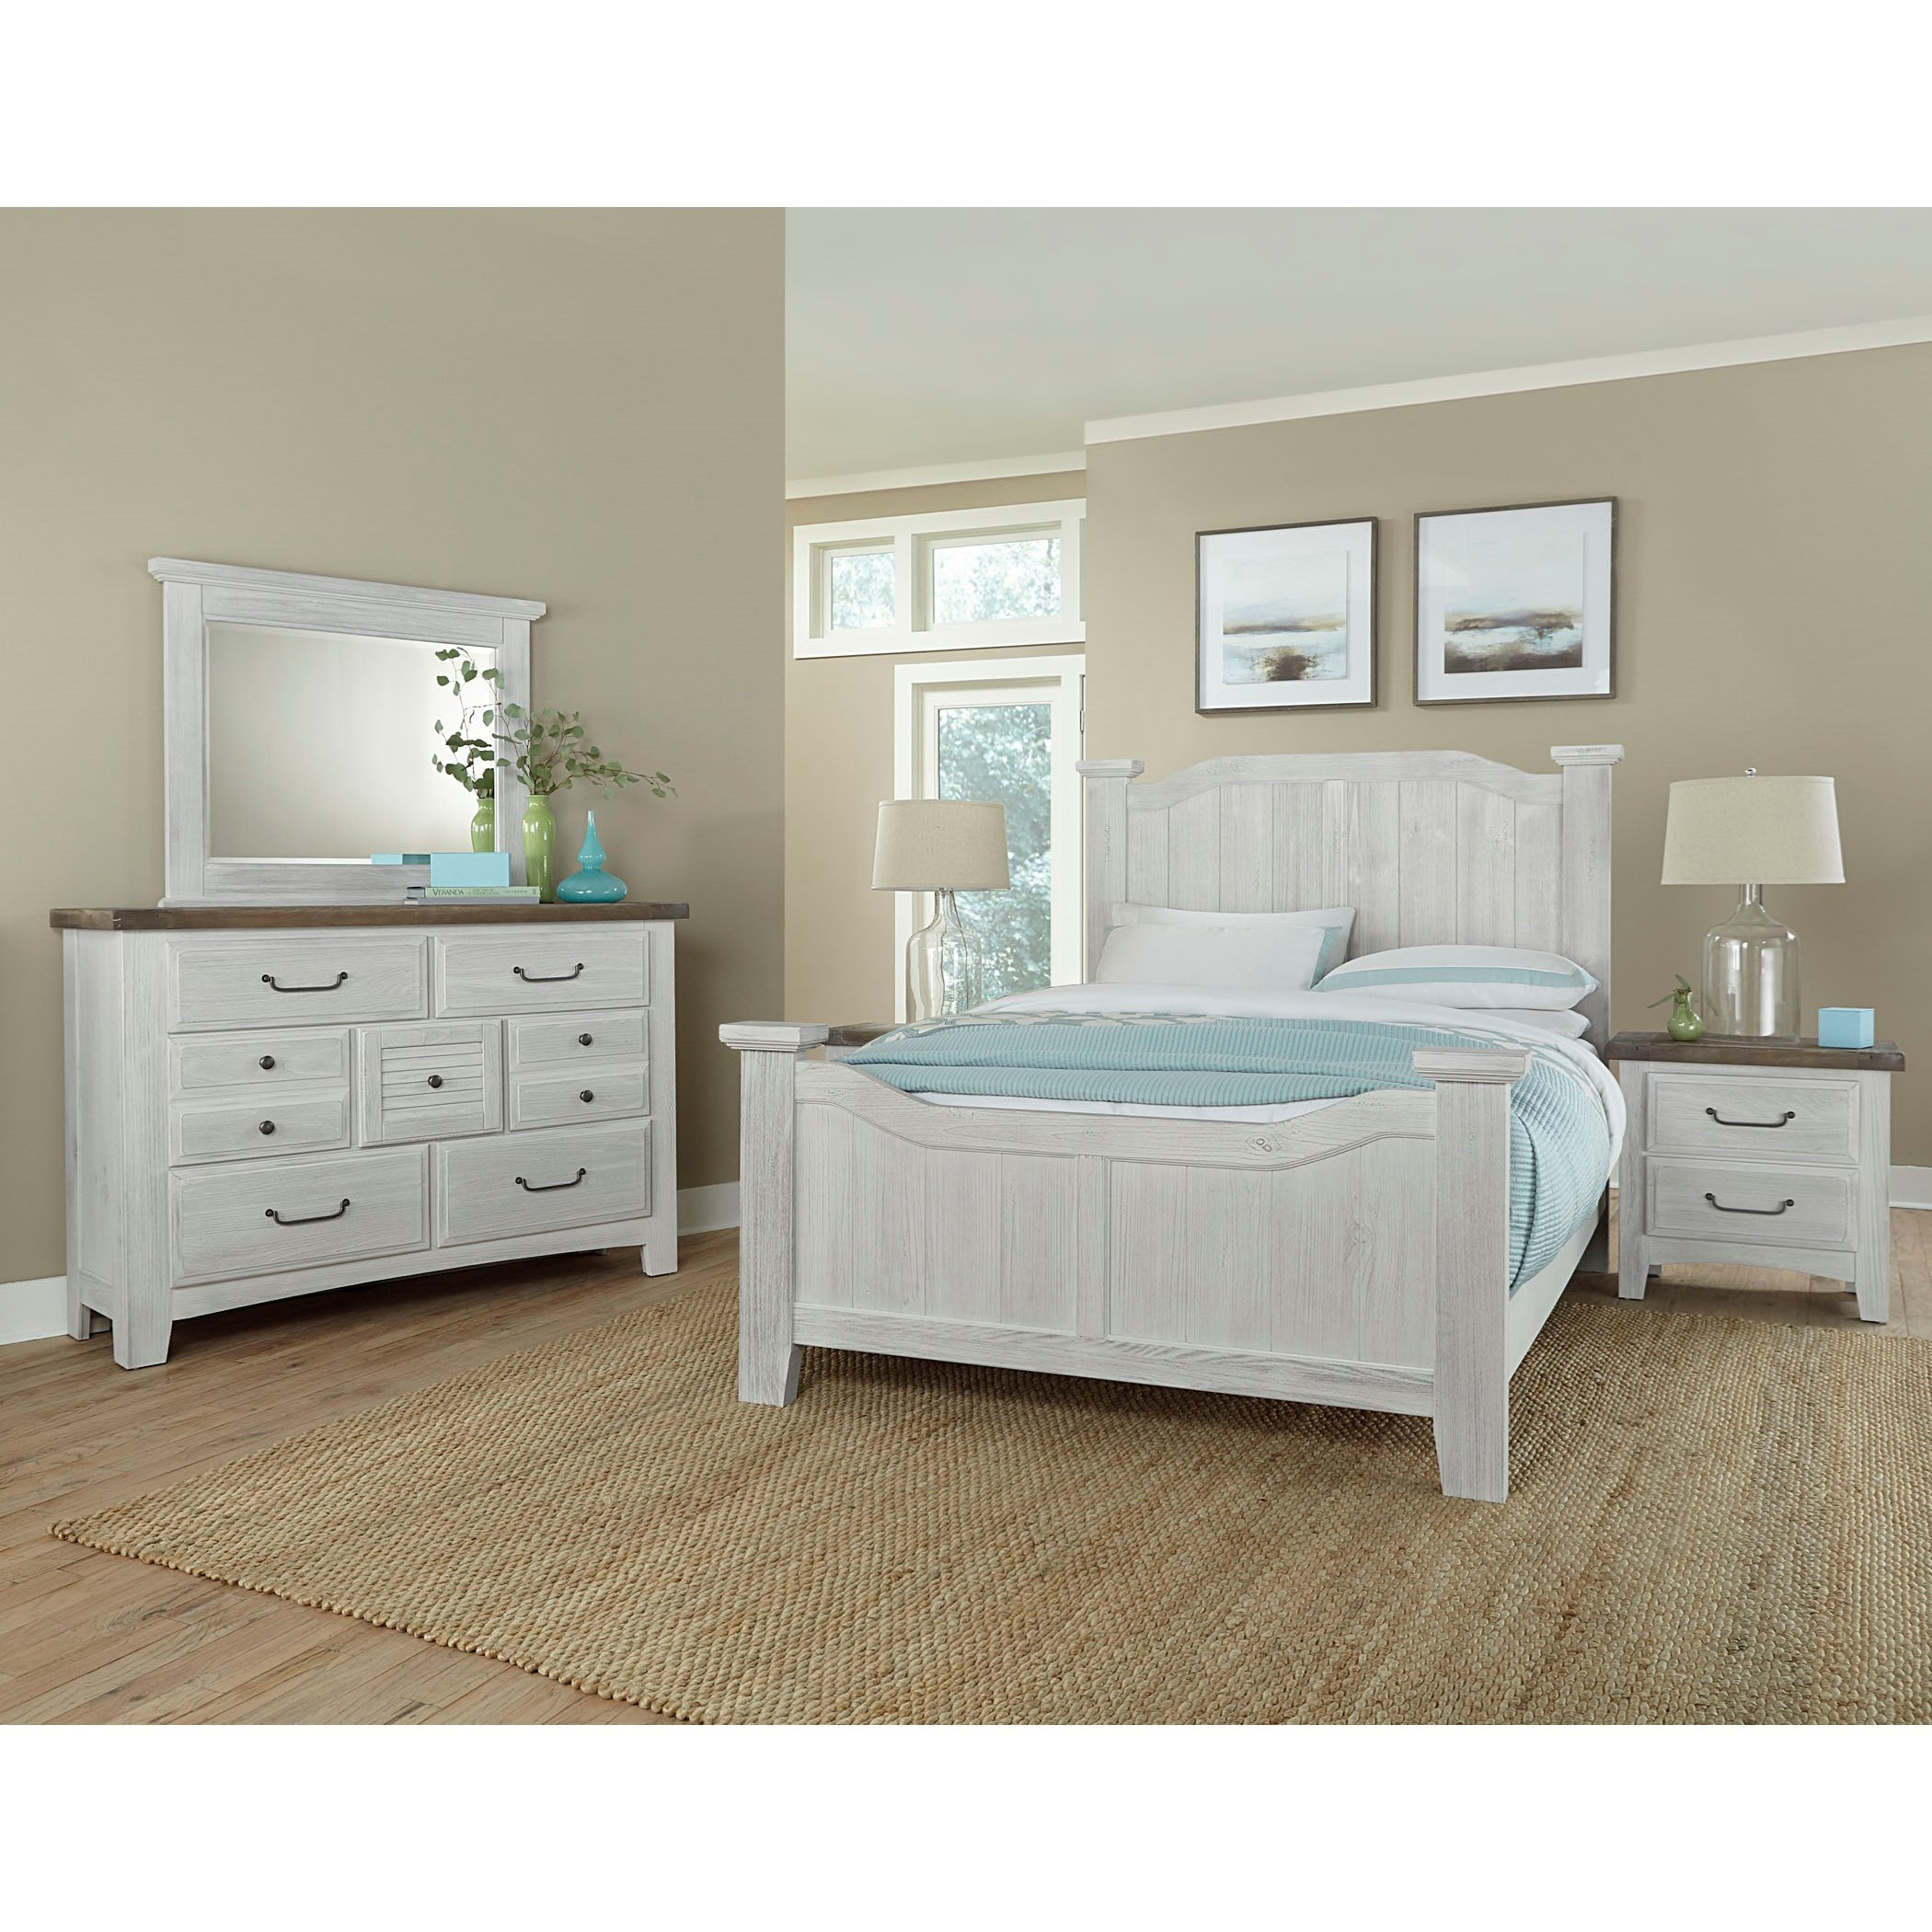 Vaughan Bassett Sawmill King Bedroom Group